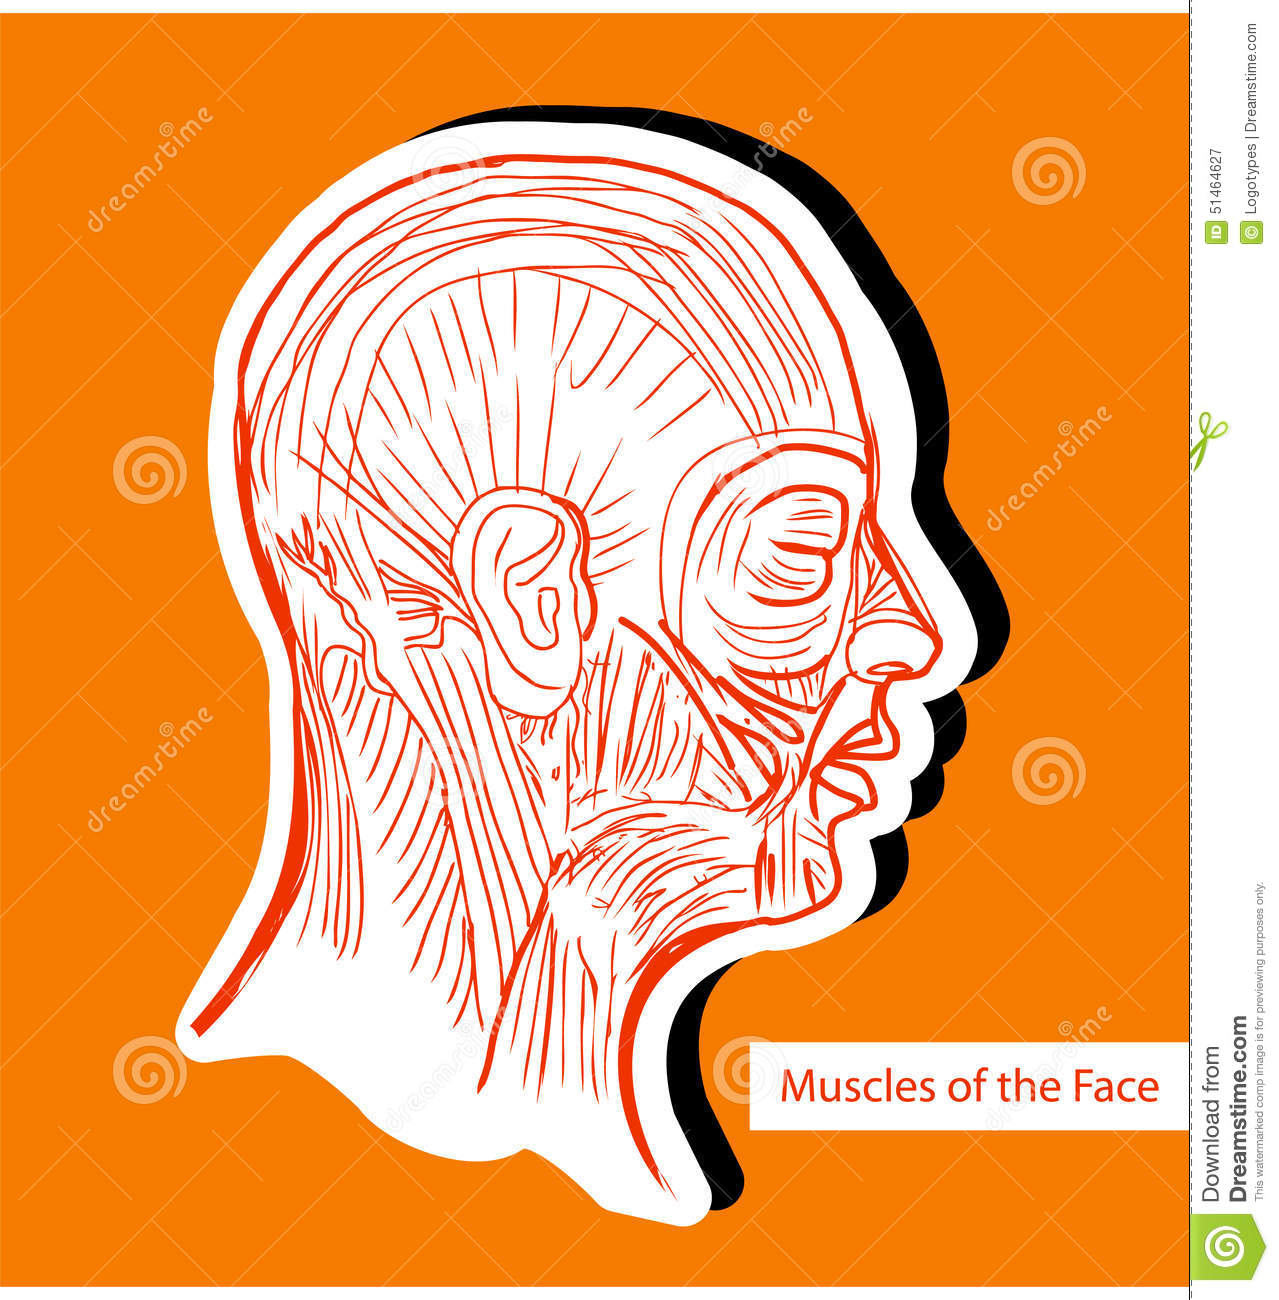 Human Anatomie Muscles Of The Face (Facial Muscles) - Medical Il ...